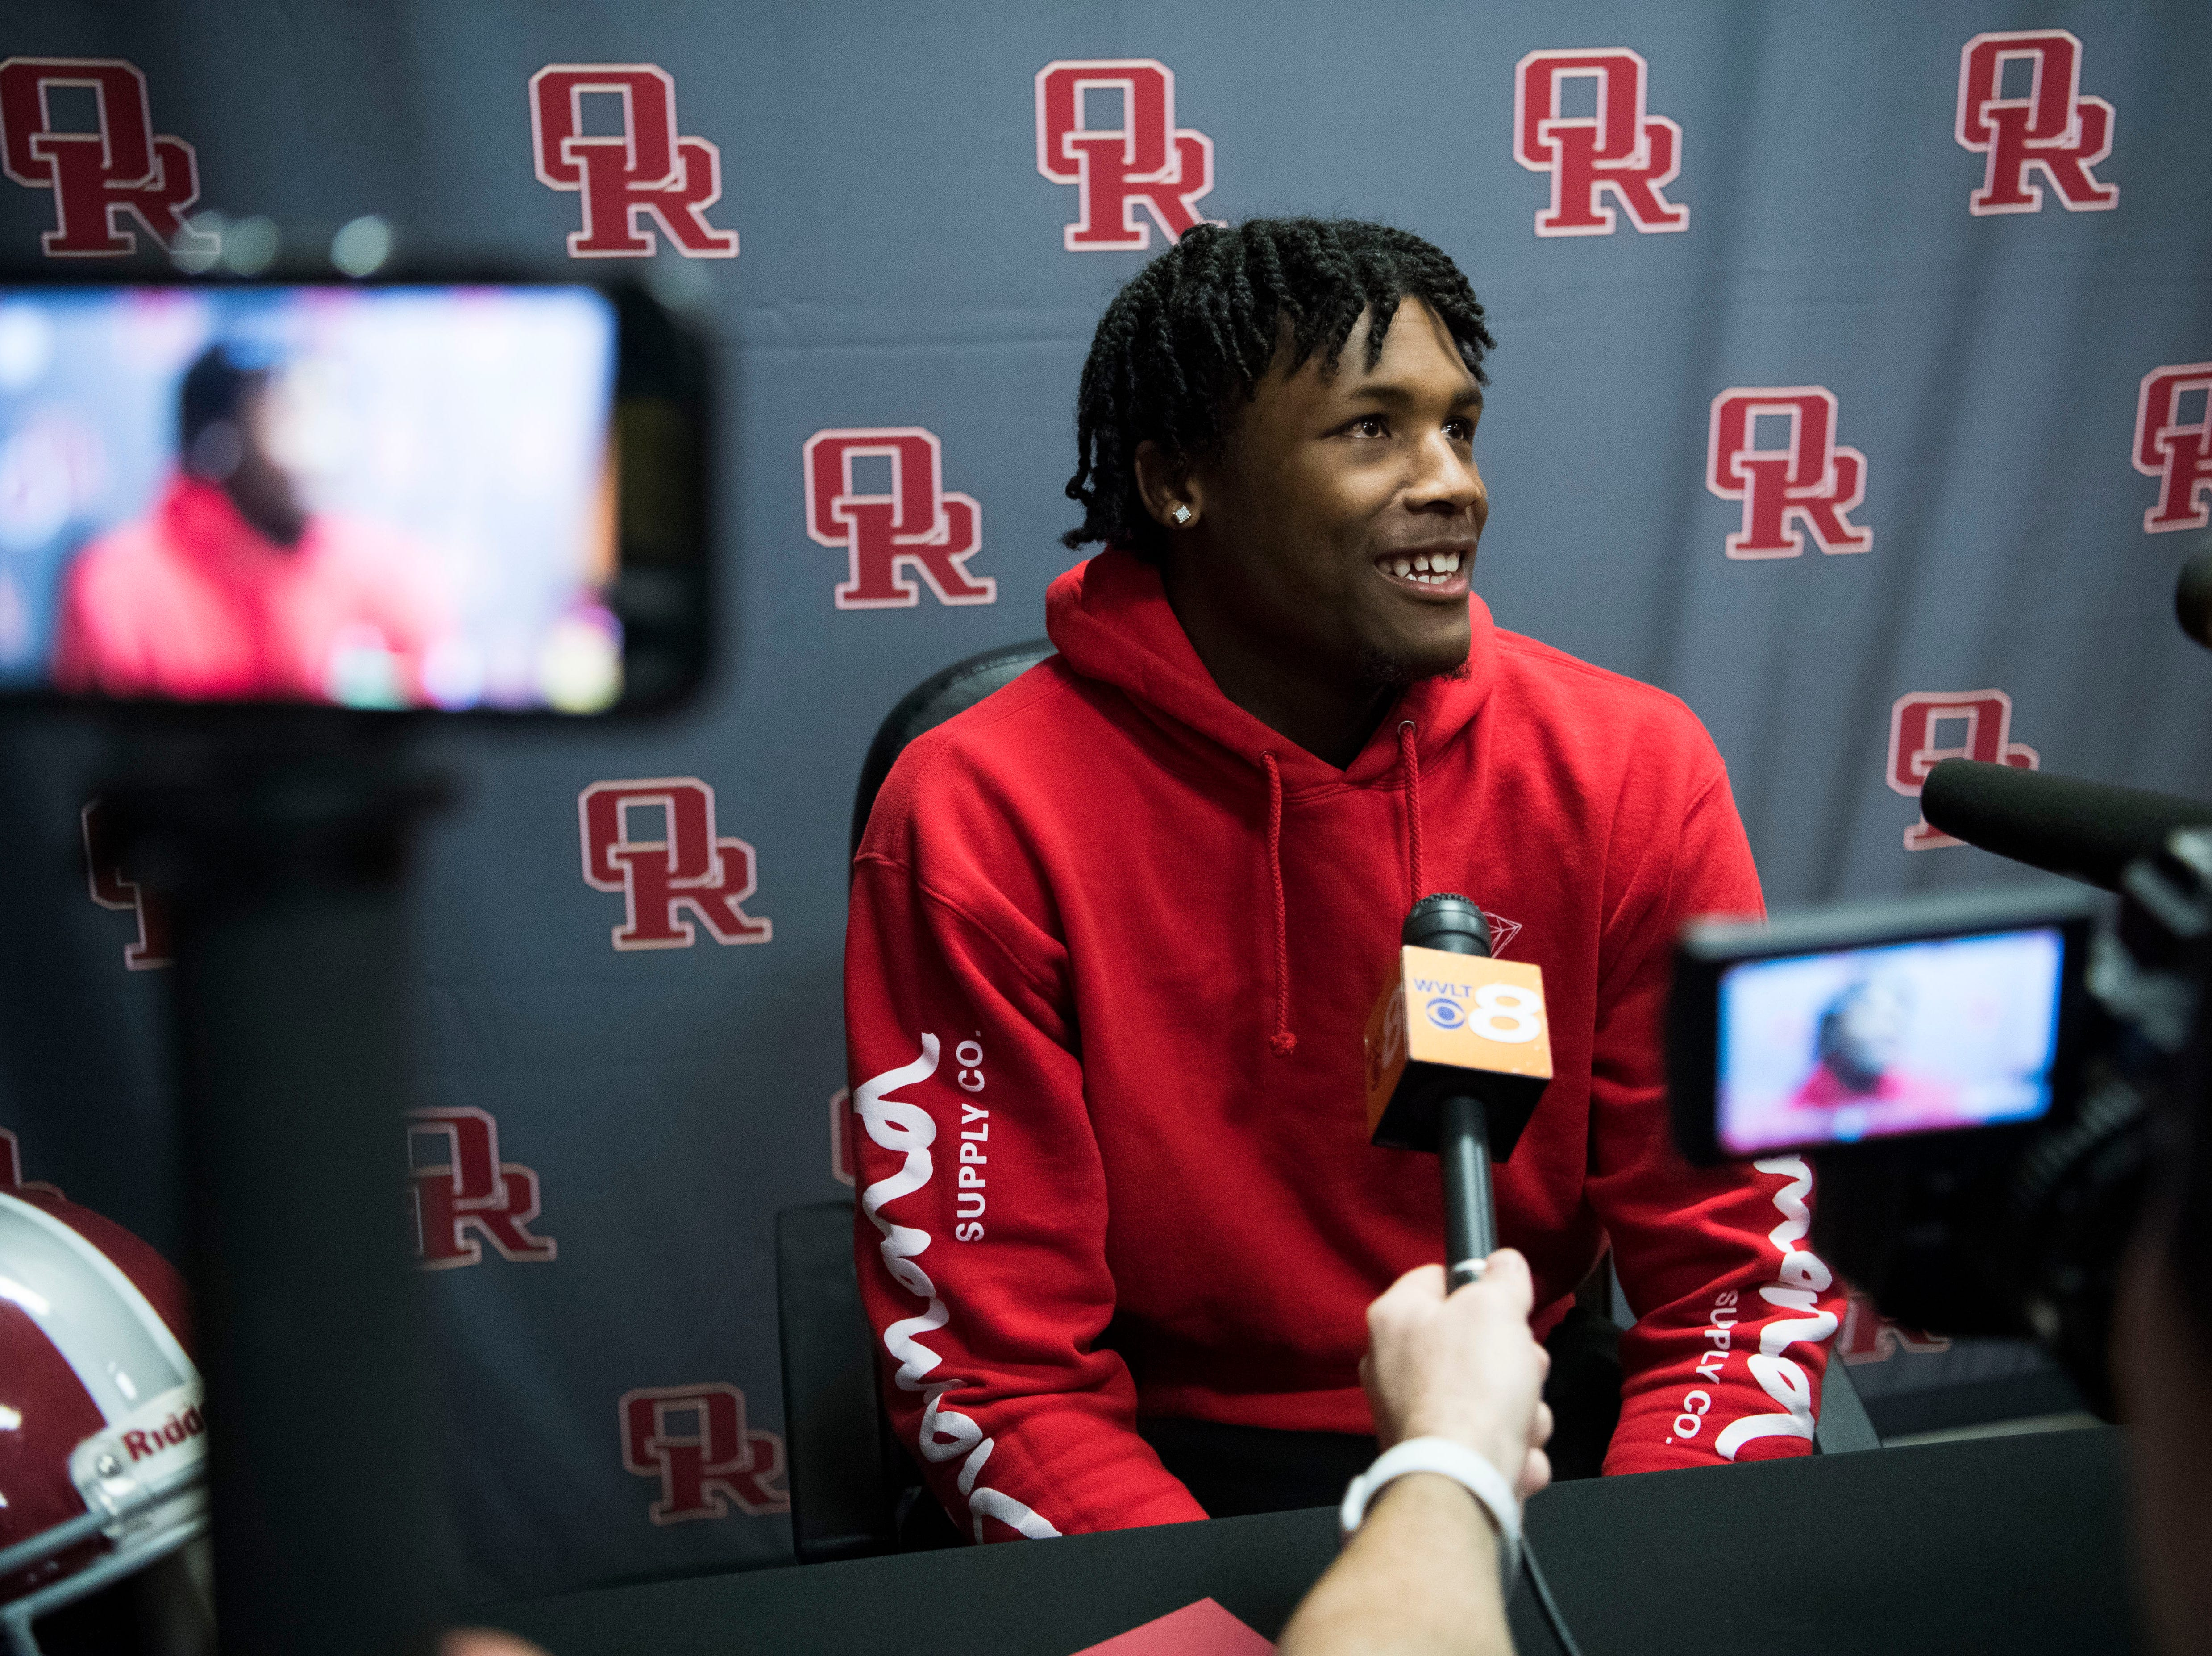 Former Oak Ridge High School athlete Tee Higgins, now a wide receiver at Clemson University, speaks to the media after his jersey was retired, during a high school basketball game between Oak Ridge and Campbell County at Oak Ridge Friday, Feb. 1, 2019.